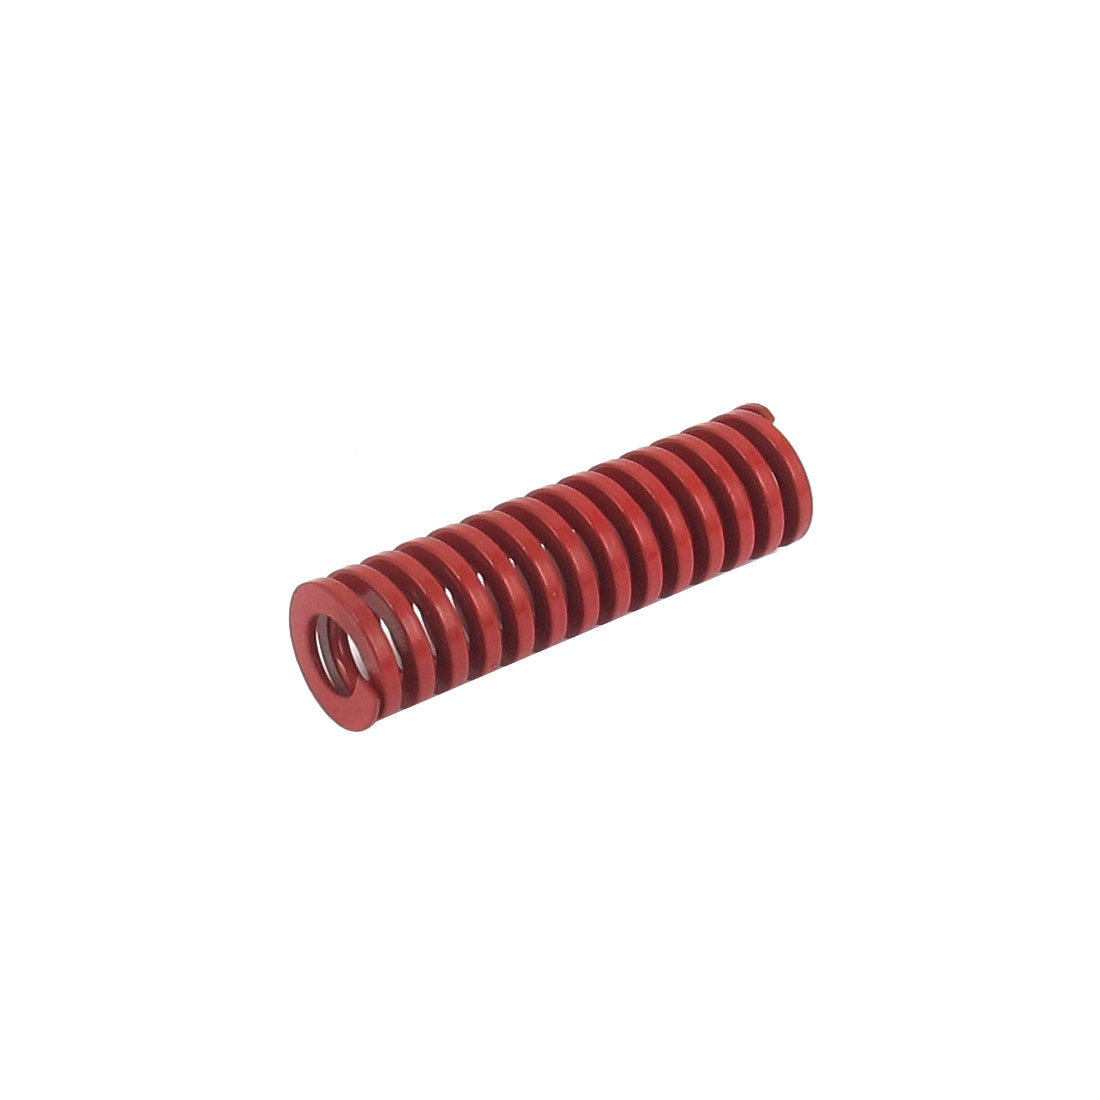 10mm OD 35mm Long Medium Load Spiral Stamping Compression Die Spring Red